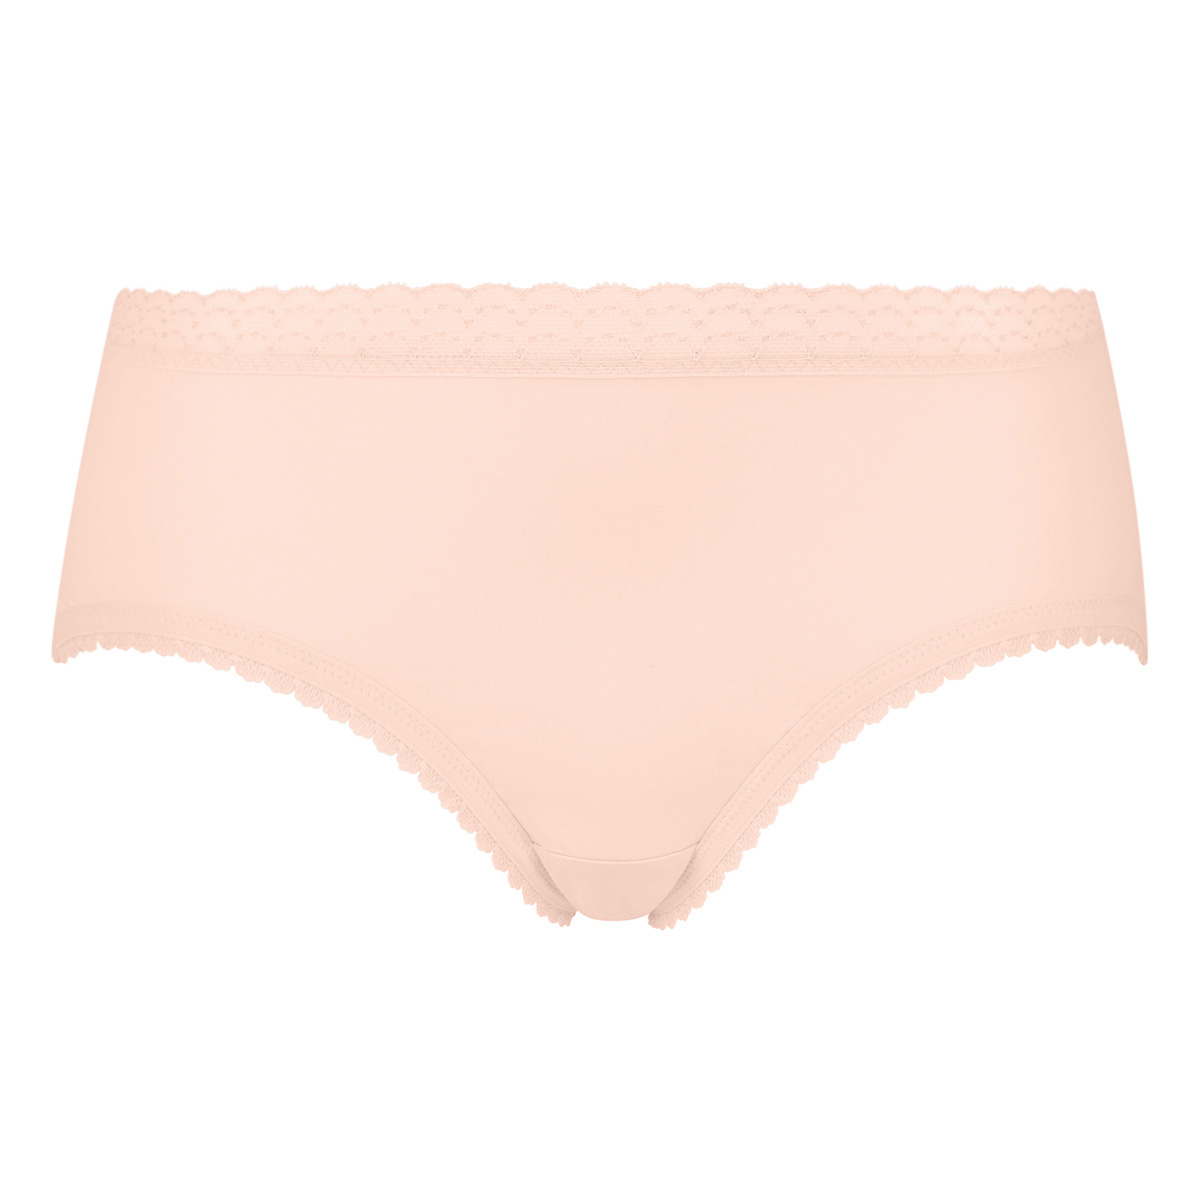 Culotte midi invisible rose pâle Invisible Elegance, , PLAYTEX